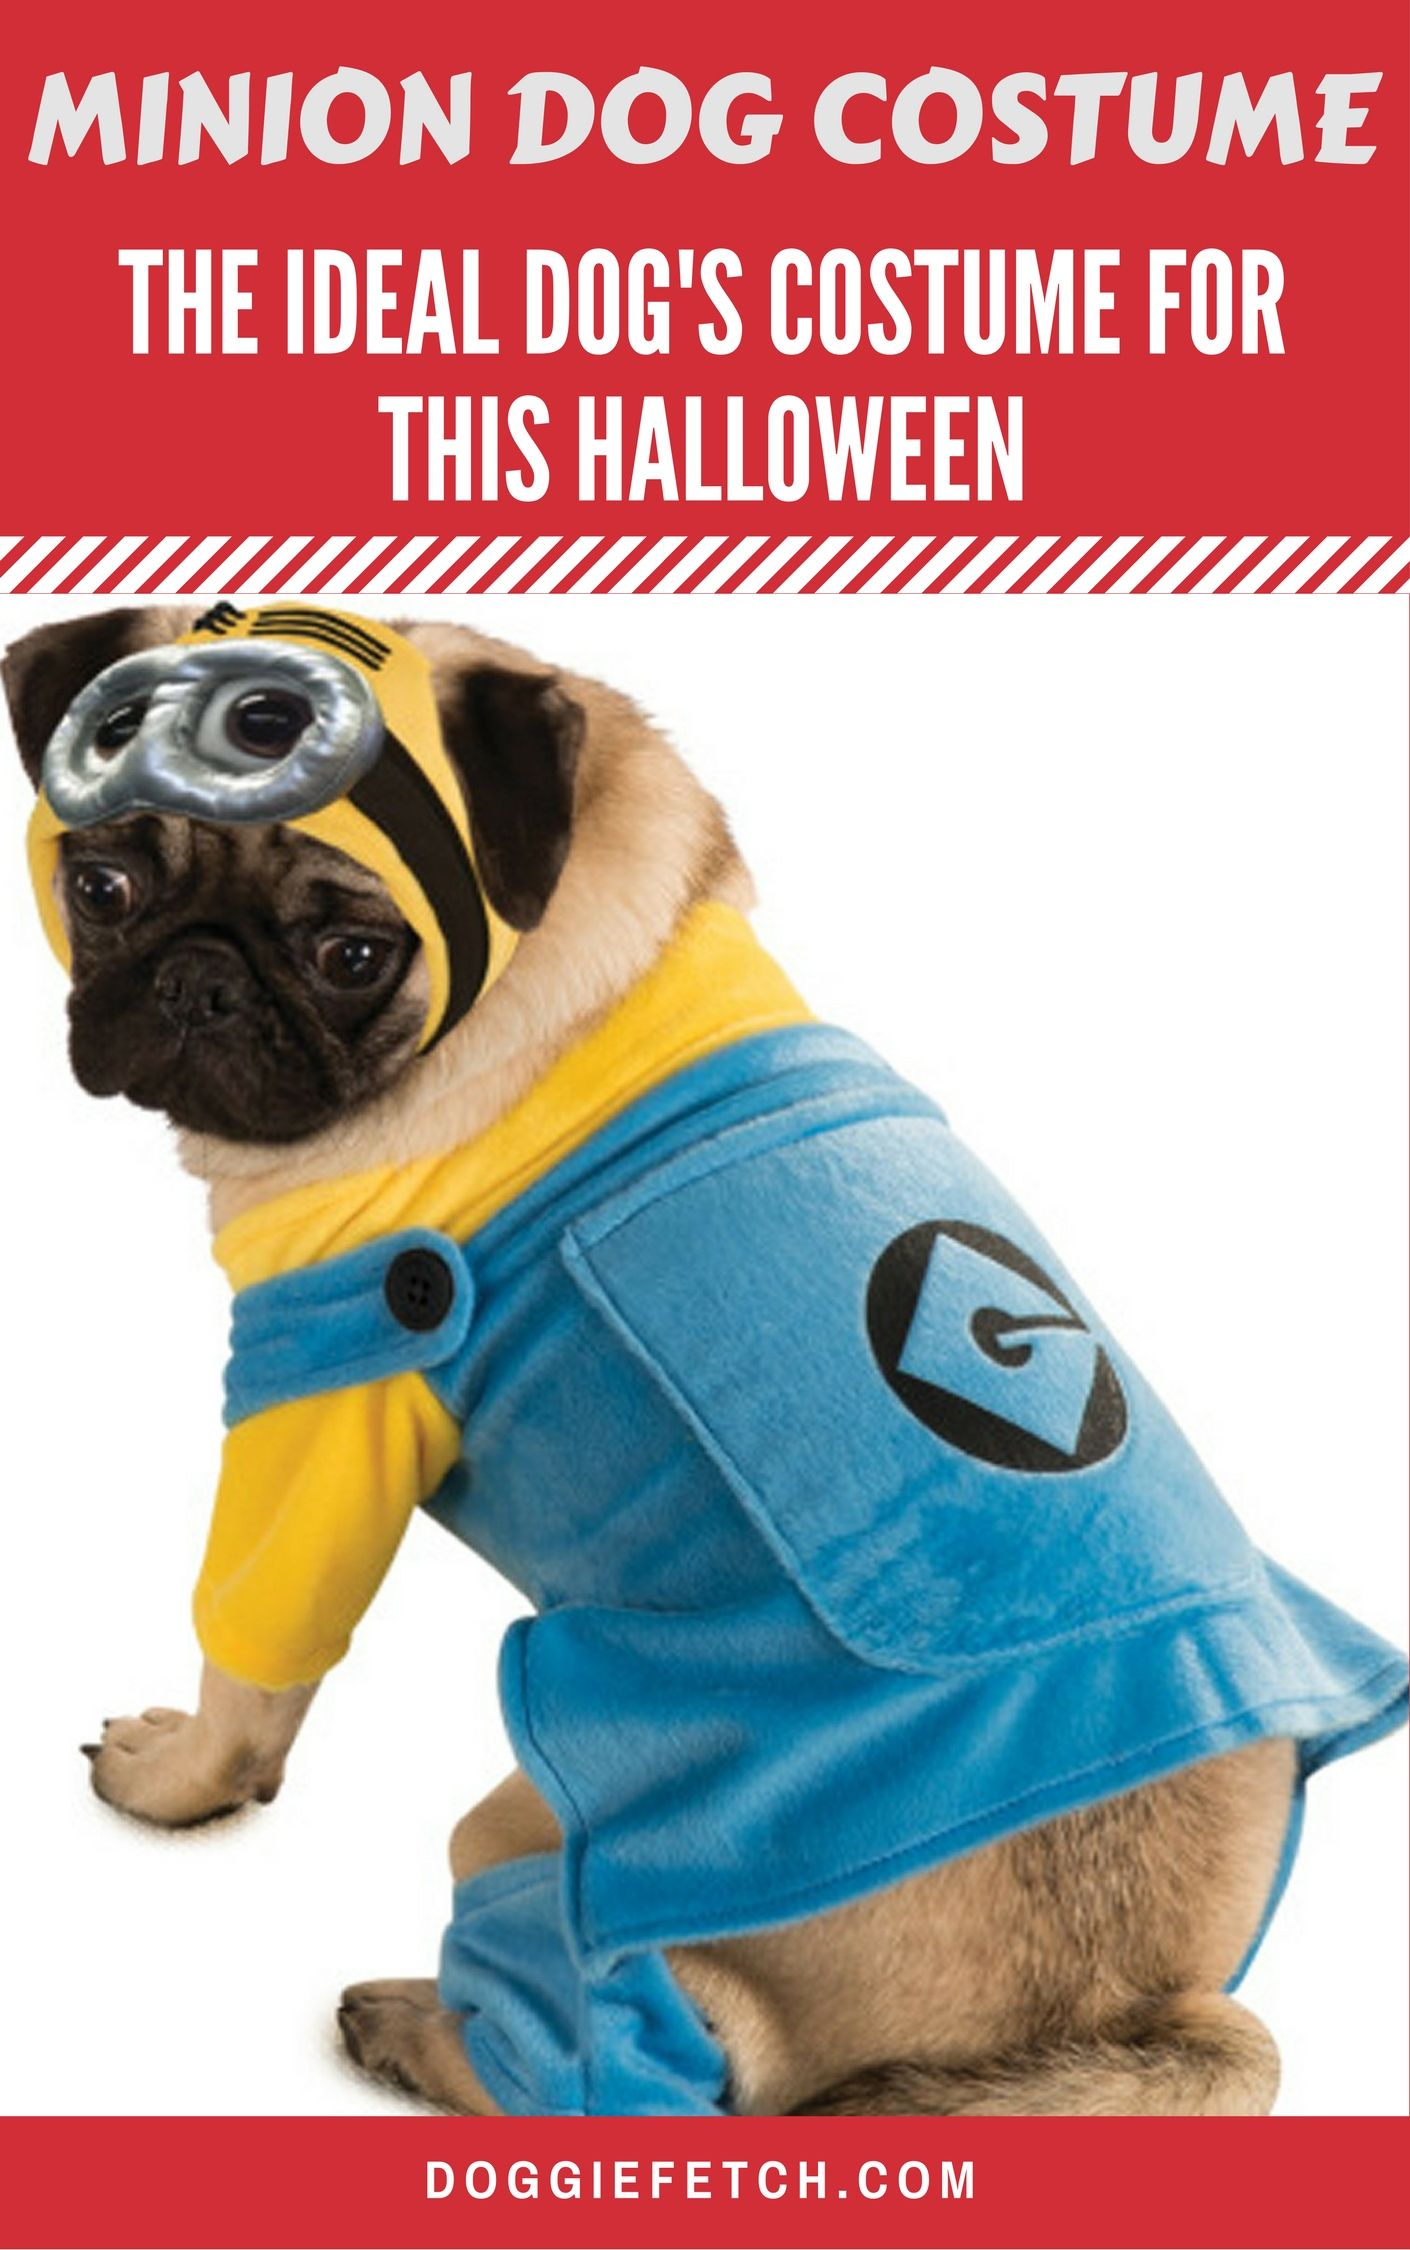 10 Dog Halloween Costume Ideas For 2020 Dog Halloween Costumes